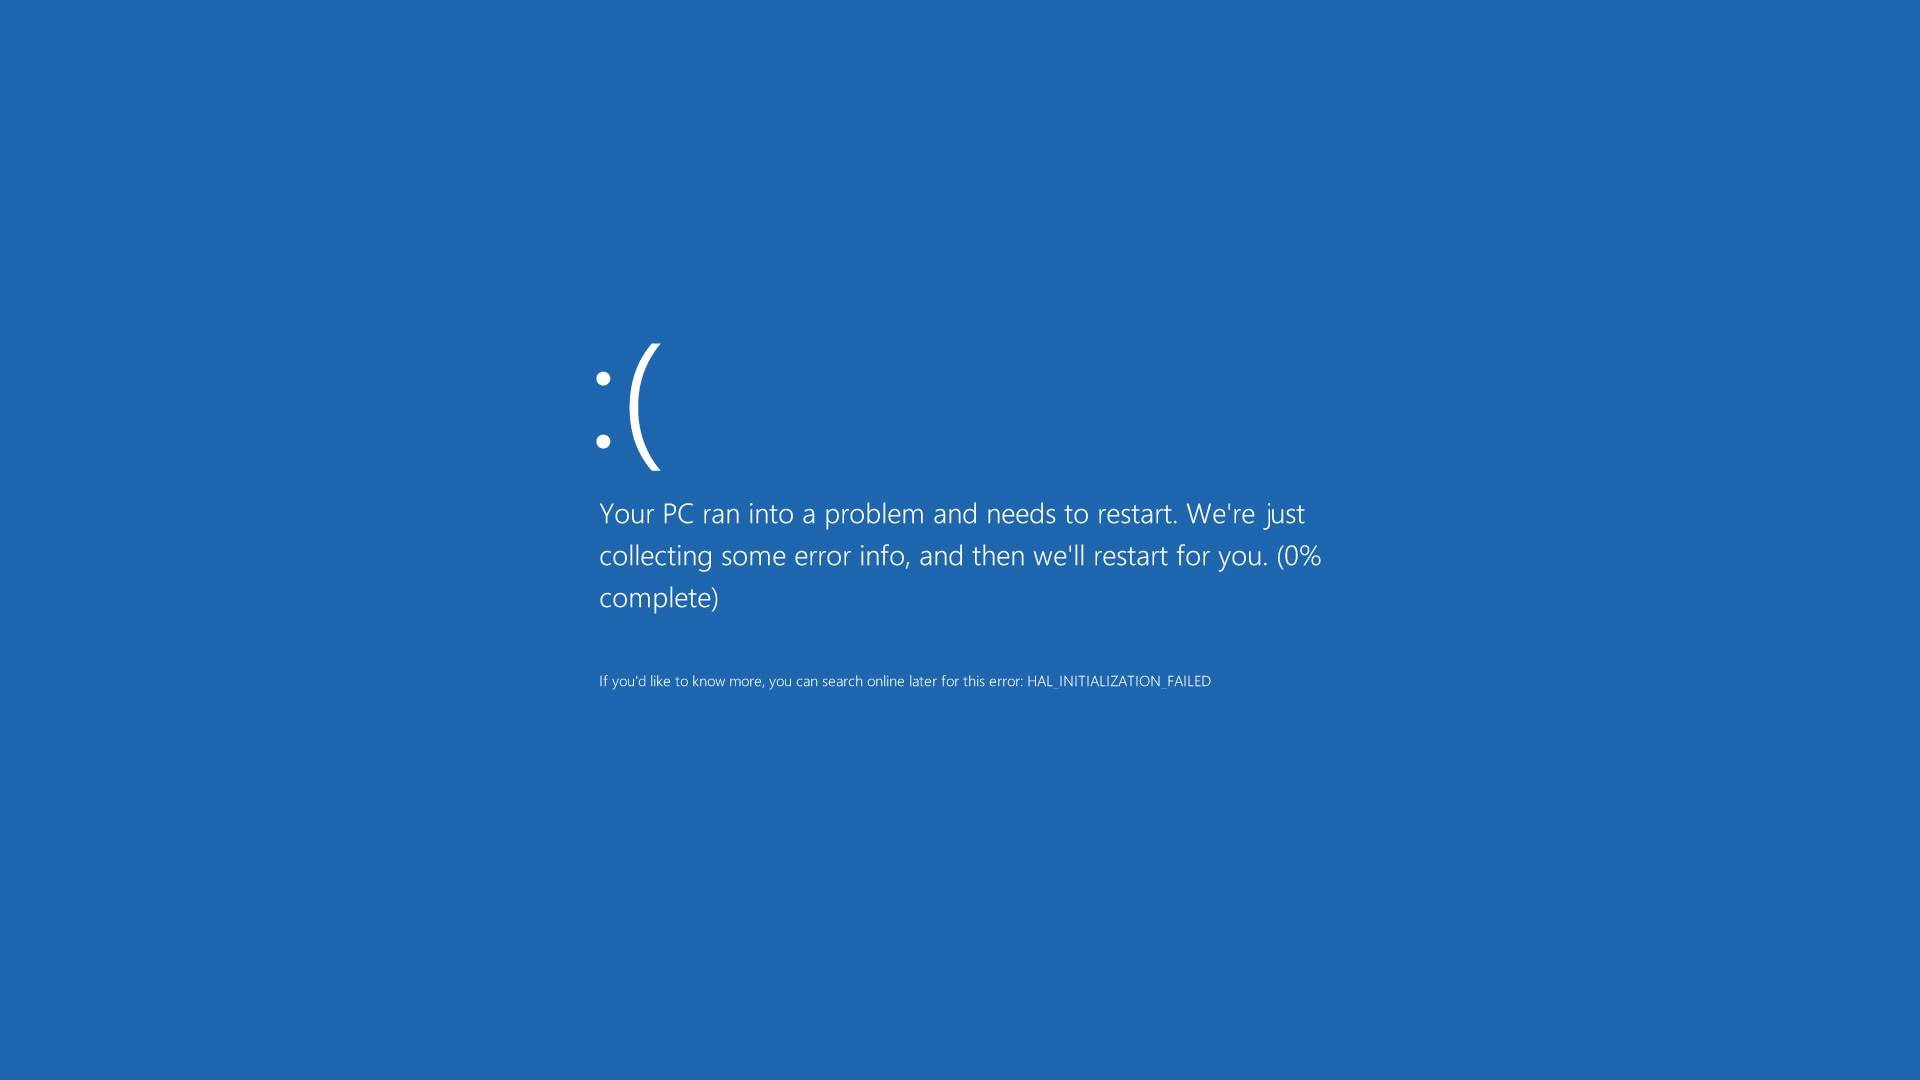 Blue Screen Of Death Wallpaper 1920x1080 Posted By Ryan Anderson